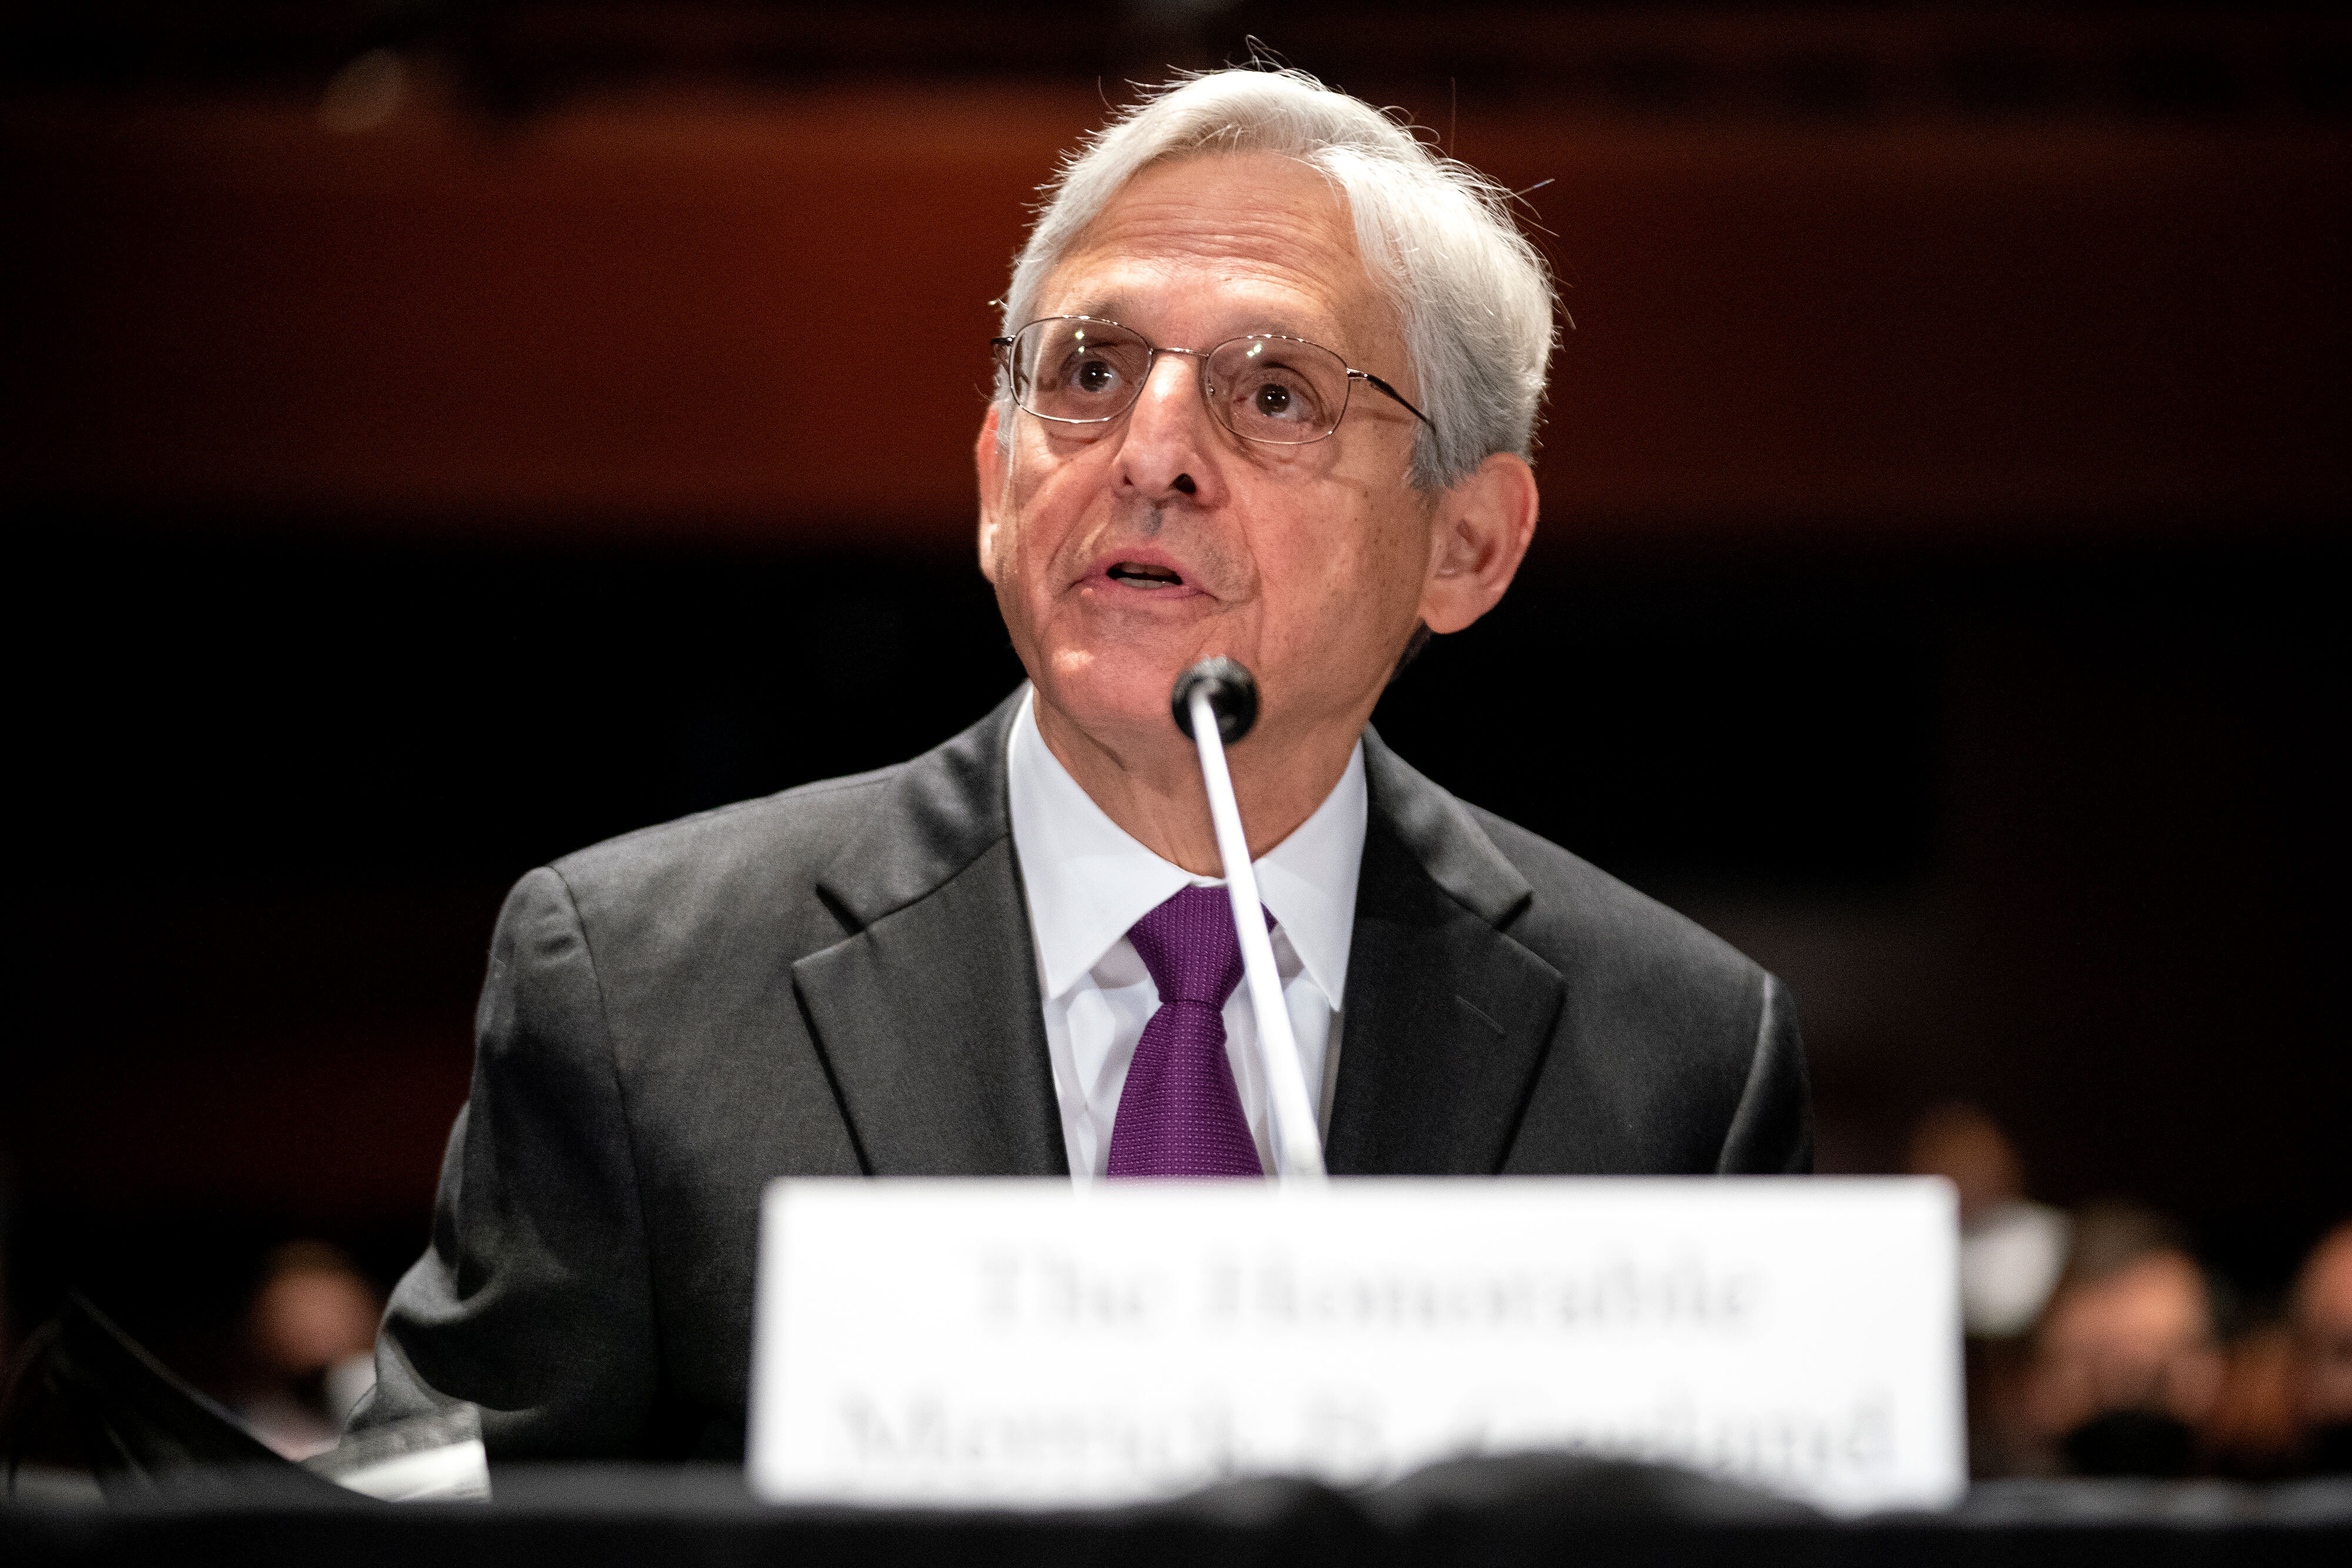 Takeaways from Merrick Garland's hearing with the House Judiciary Committee